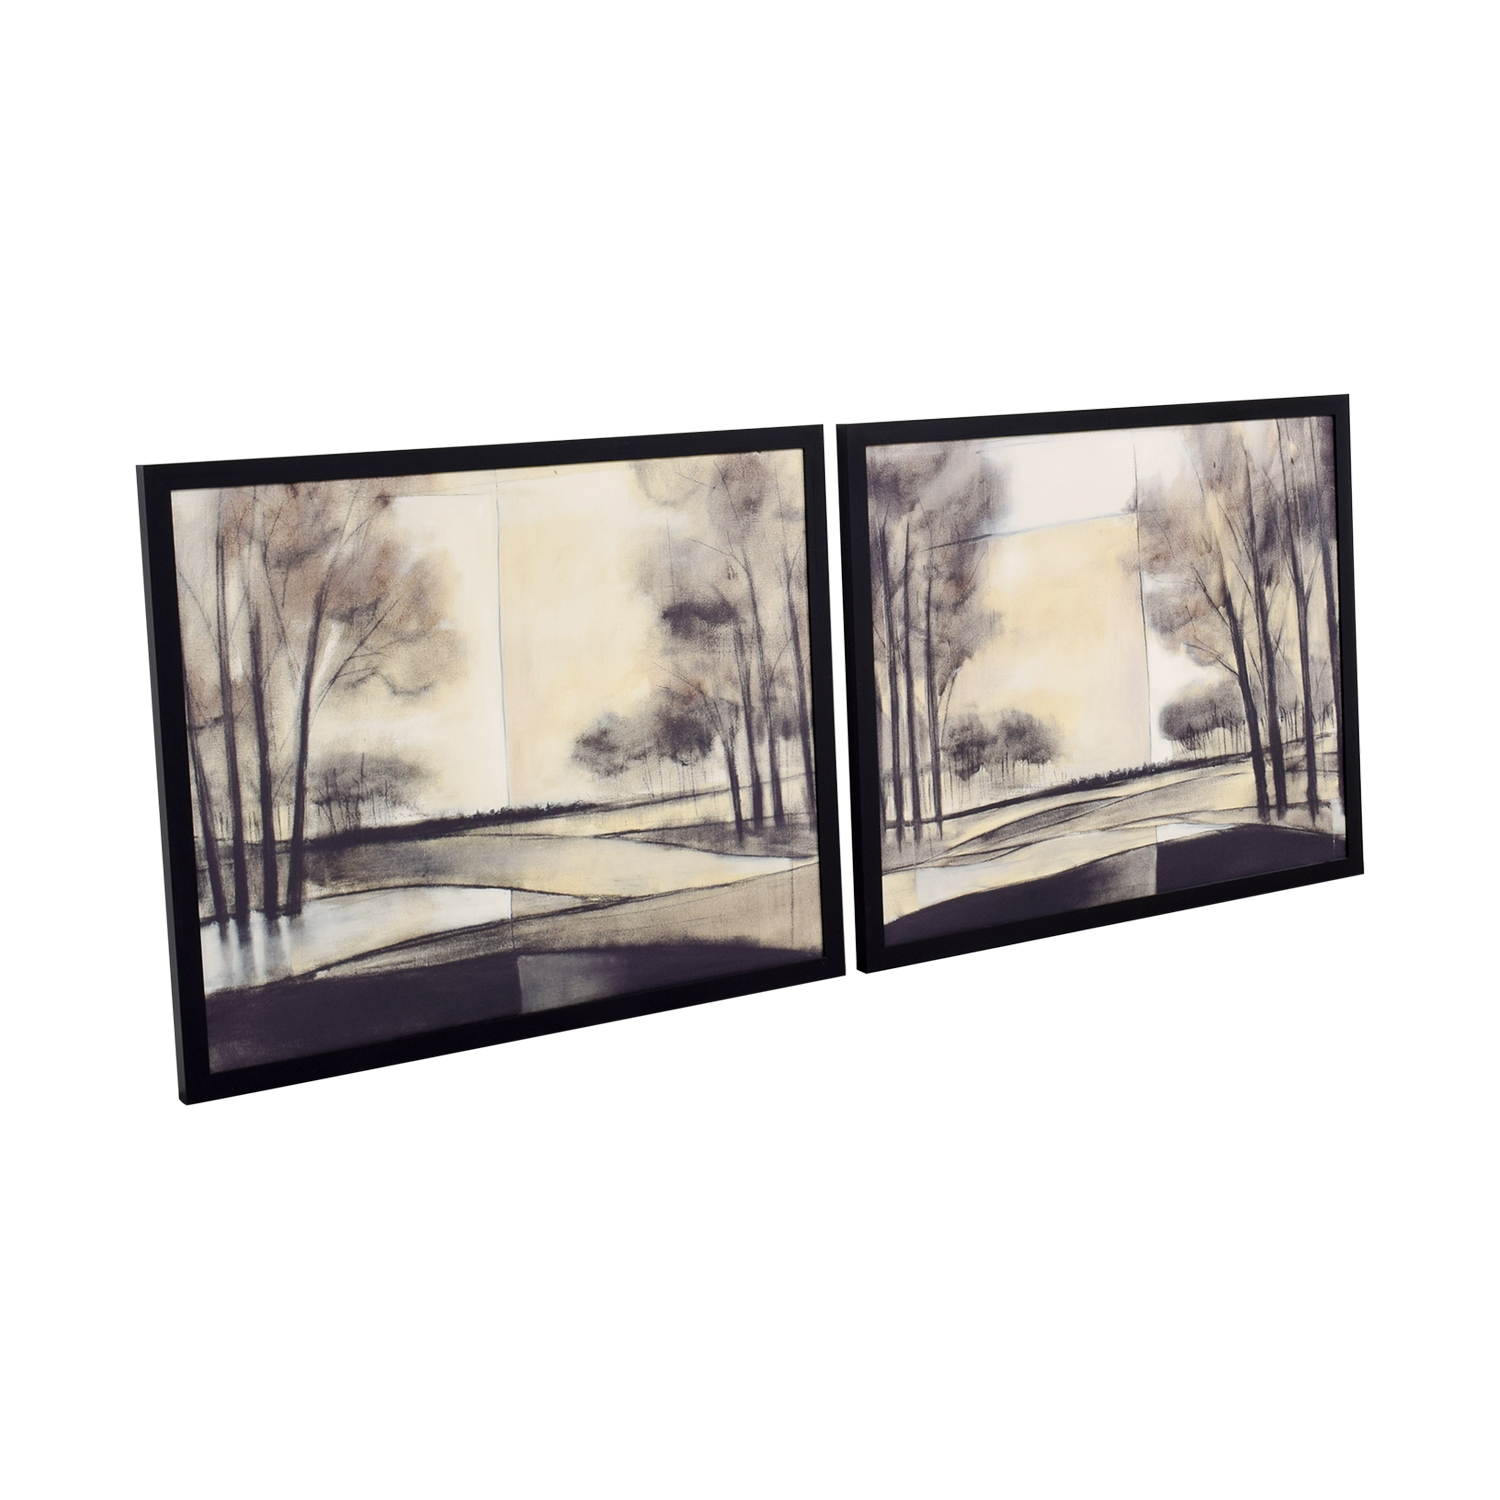 Black and White Scenic Art on Canvas dimensions